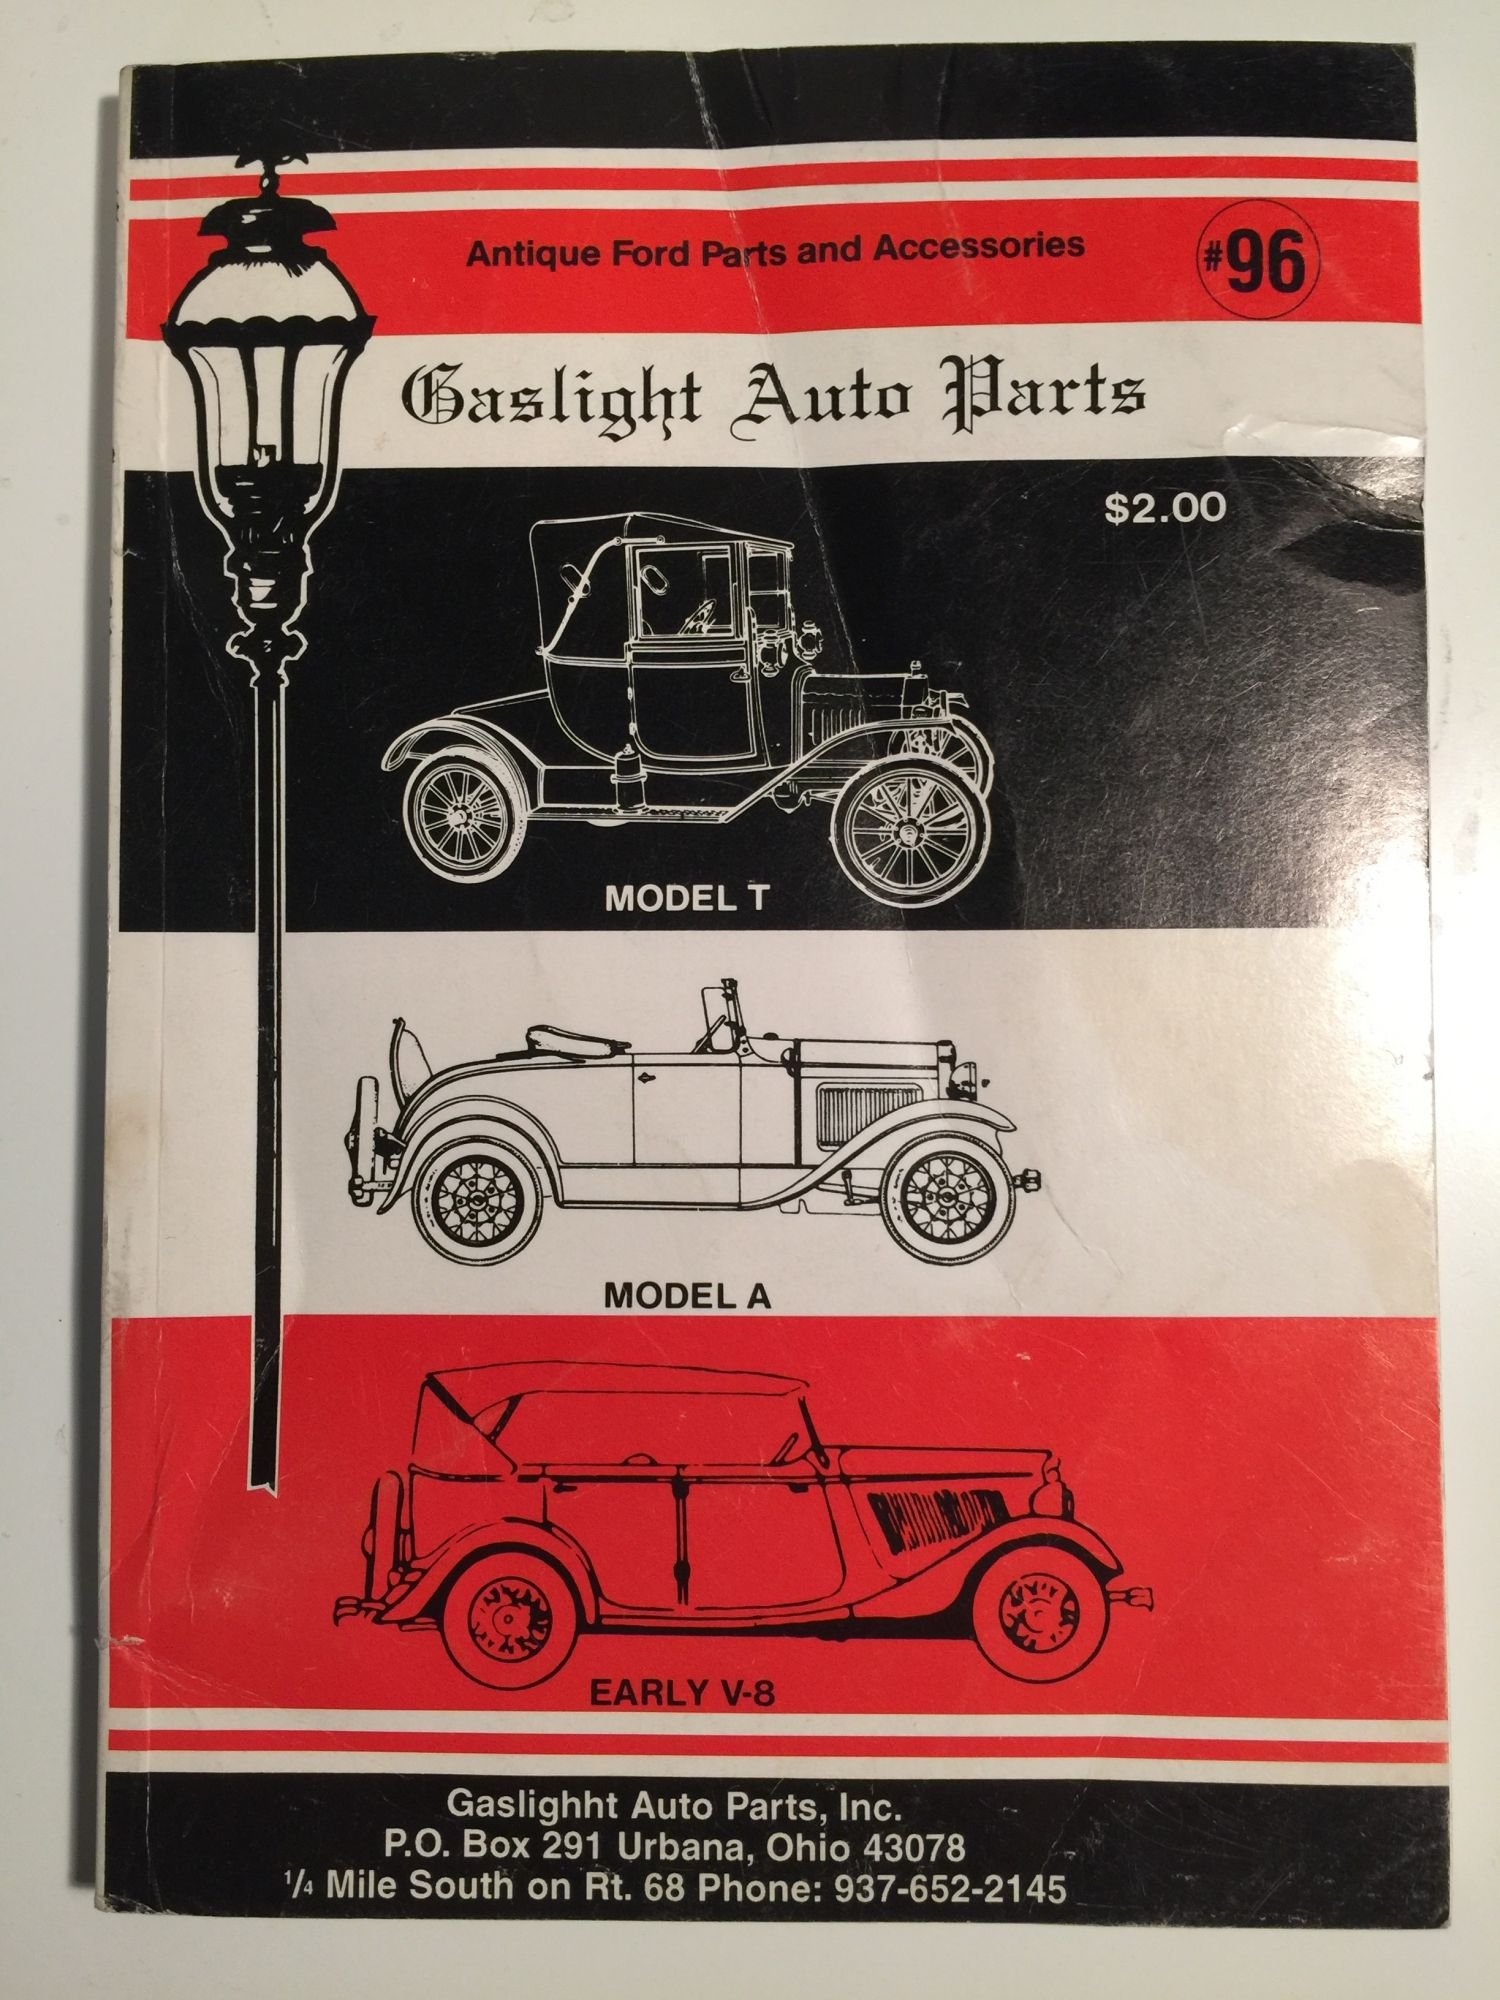 Gaslight Auto Parts Antique Ford Parts and Accessories: Inc